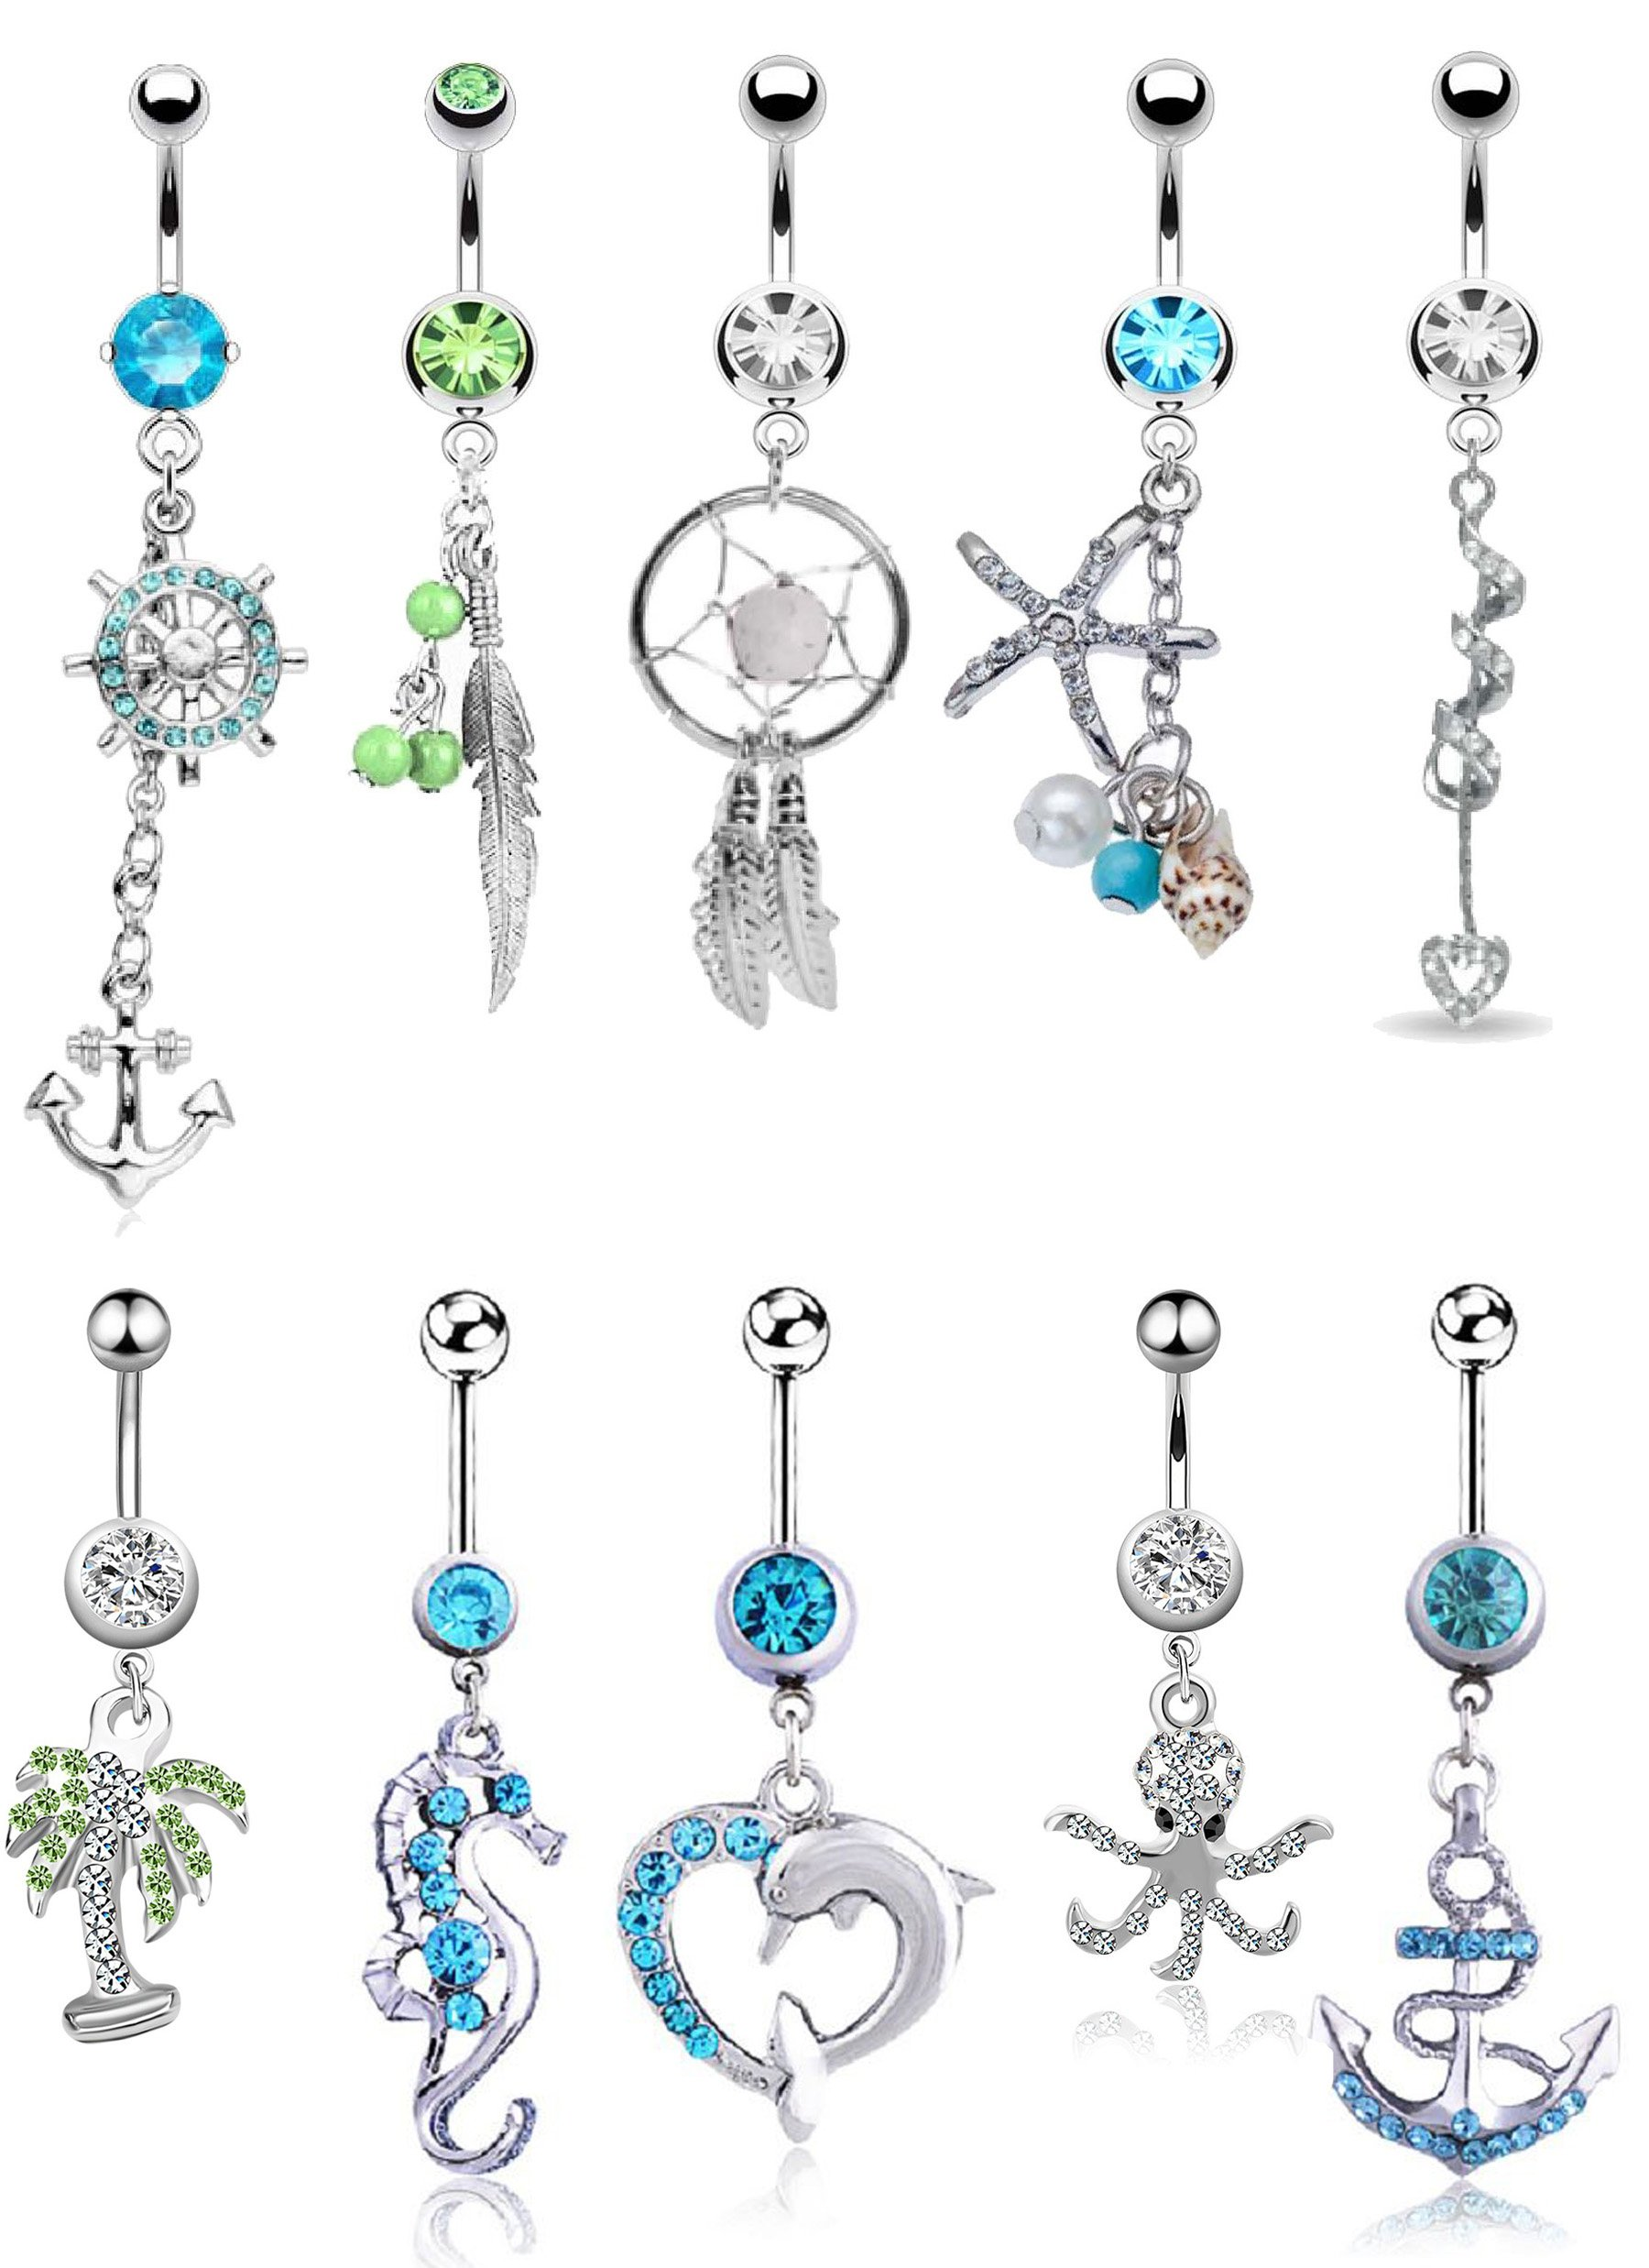 FIBO STEEL 9-10 Pcs Dangle Belly Button Rings for Women Girls 316L Surgical Steel Curved Navel Barbell Body Jewelry Piercing by FIBO STEEL